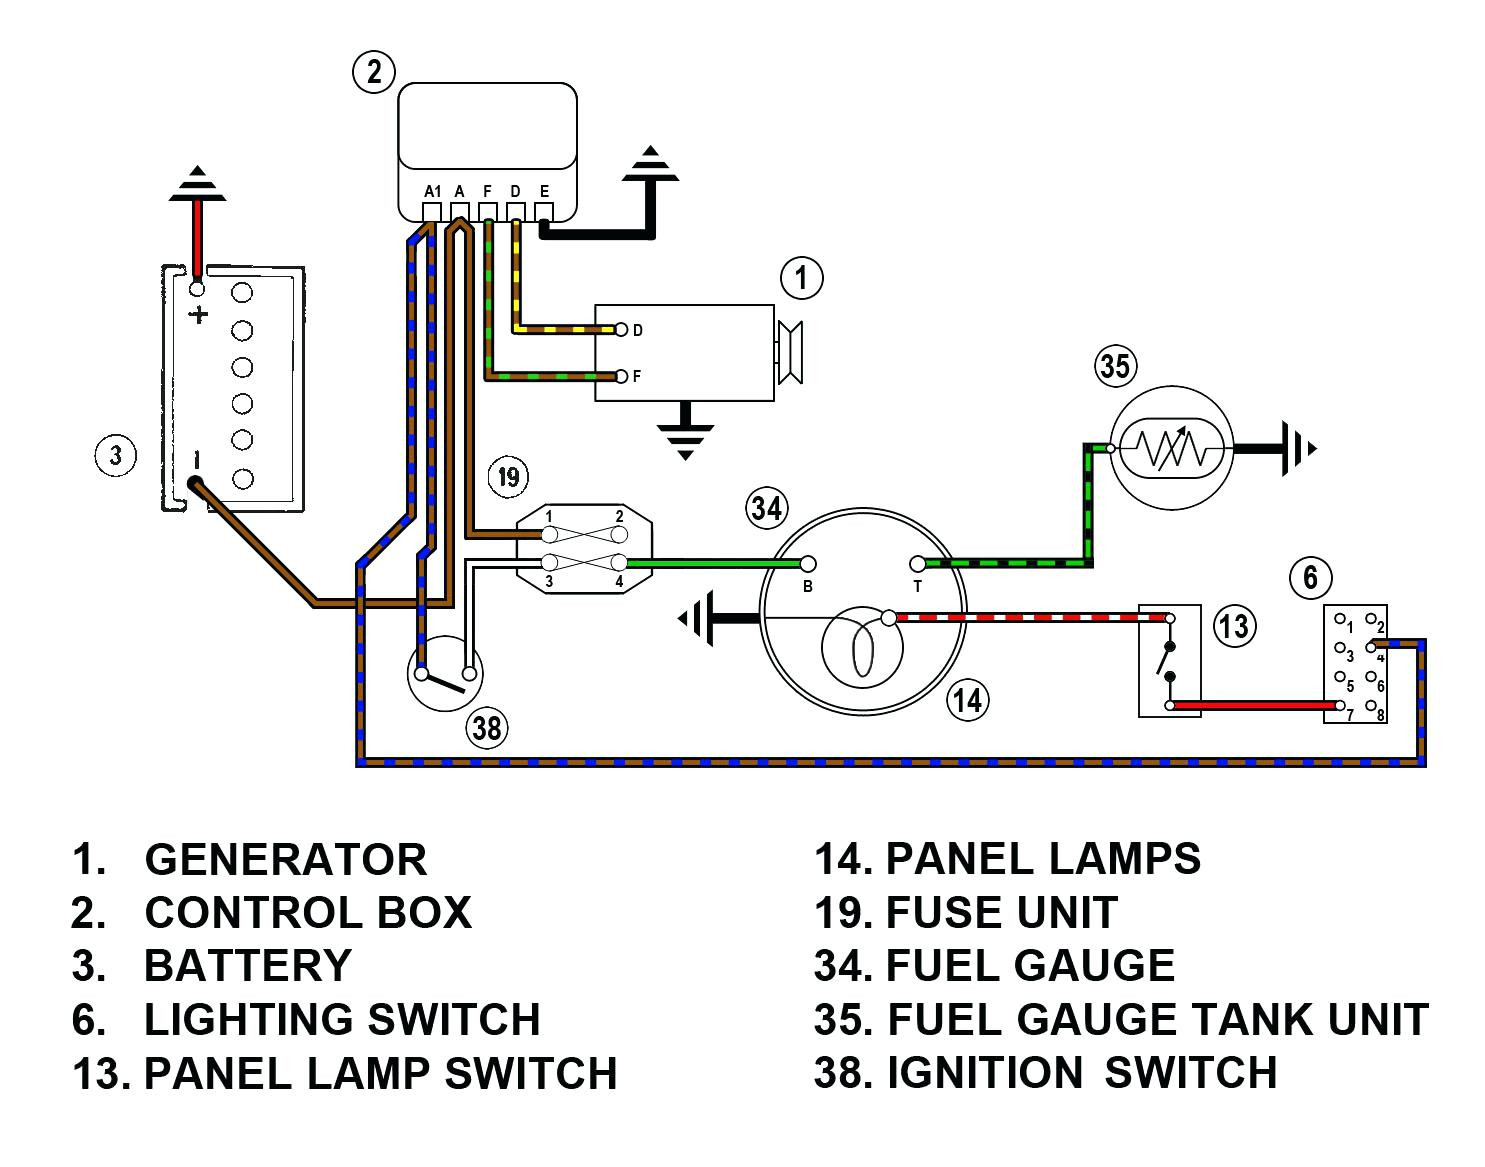 hight resolution of 1968 chevelle wiring diagram fuel tank simple wiring diagram 68 chevelle wiring schematic 1968 chevelle fuel gauge wiring diagram